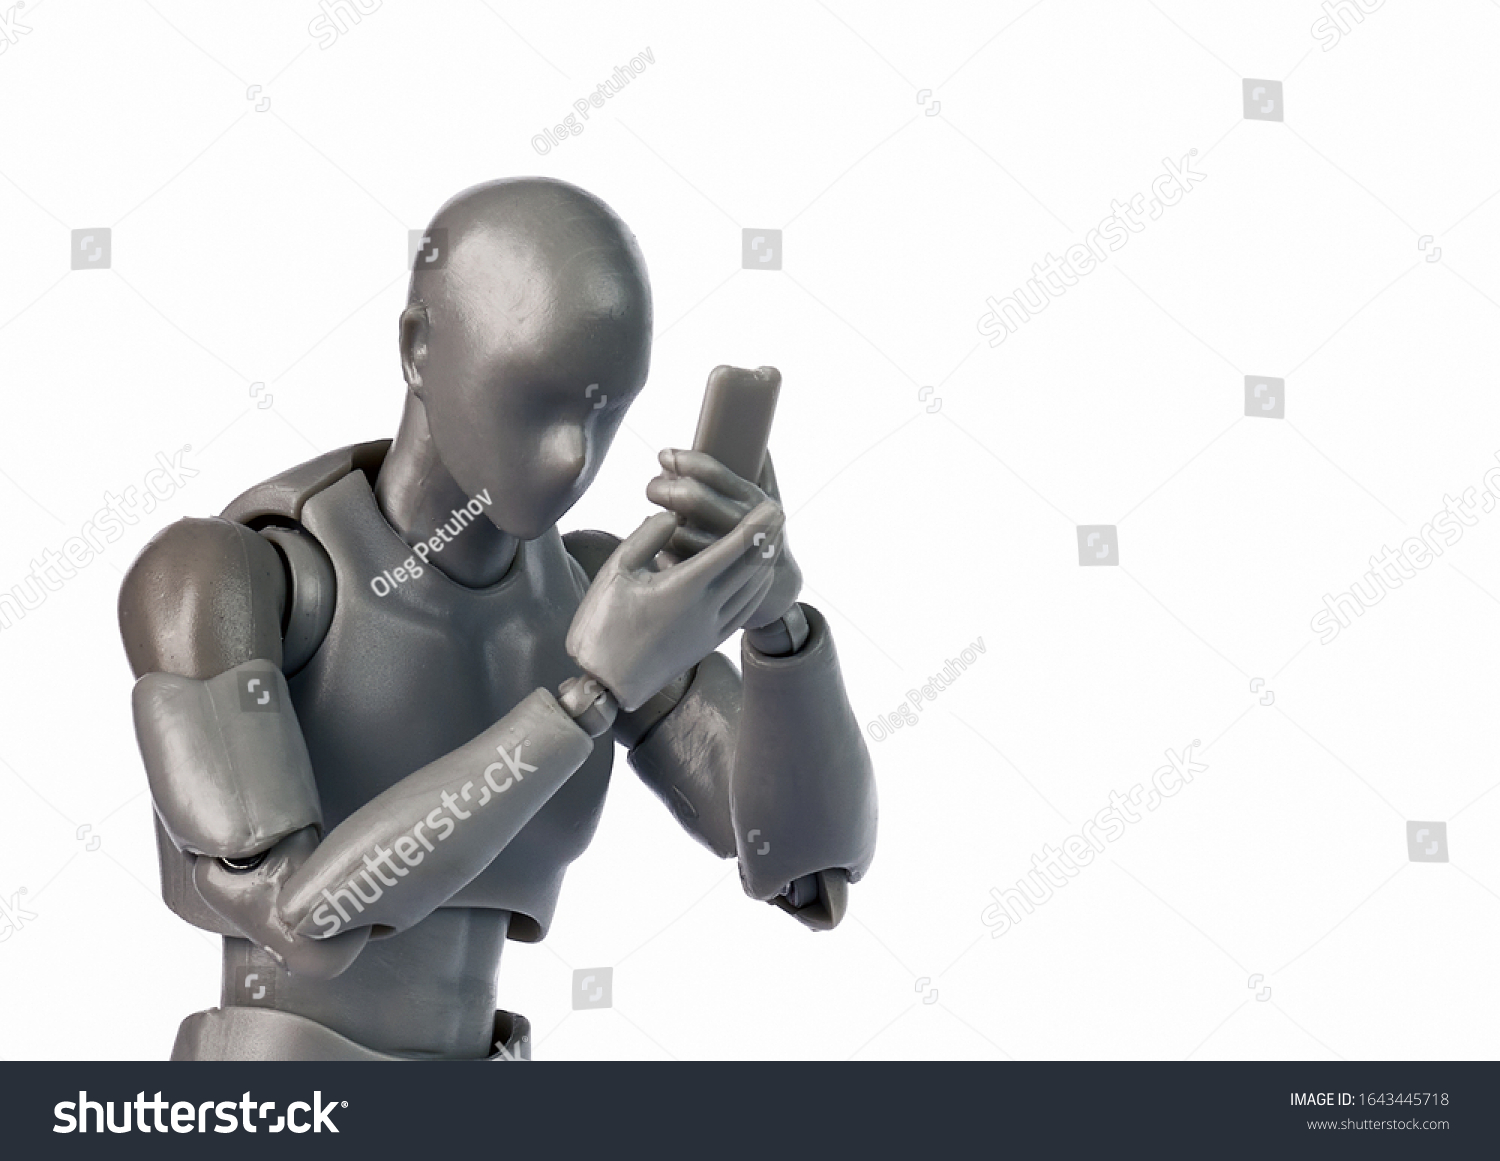 Concept of men figure with smartphone. Men watching phone. Everday life with smartphone #1643445718